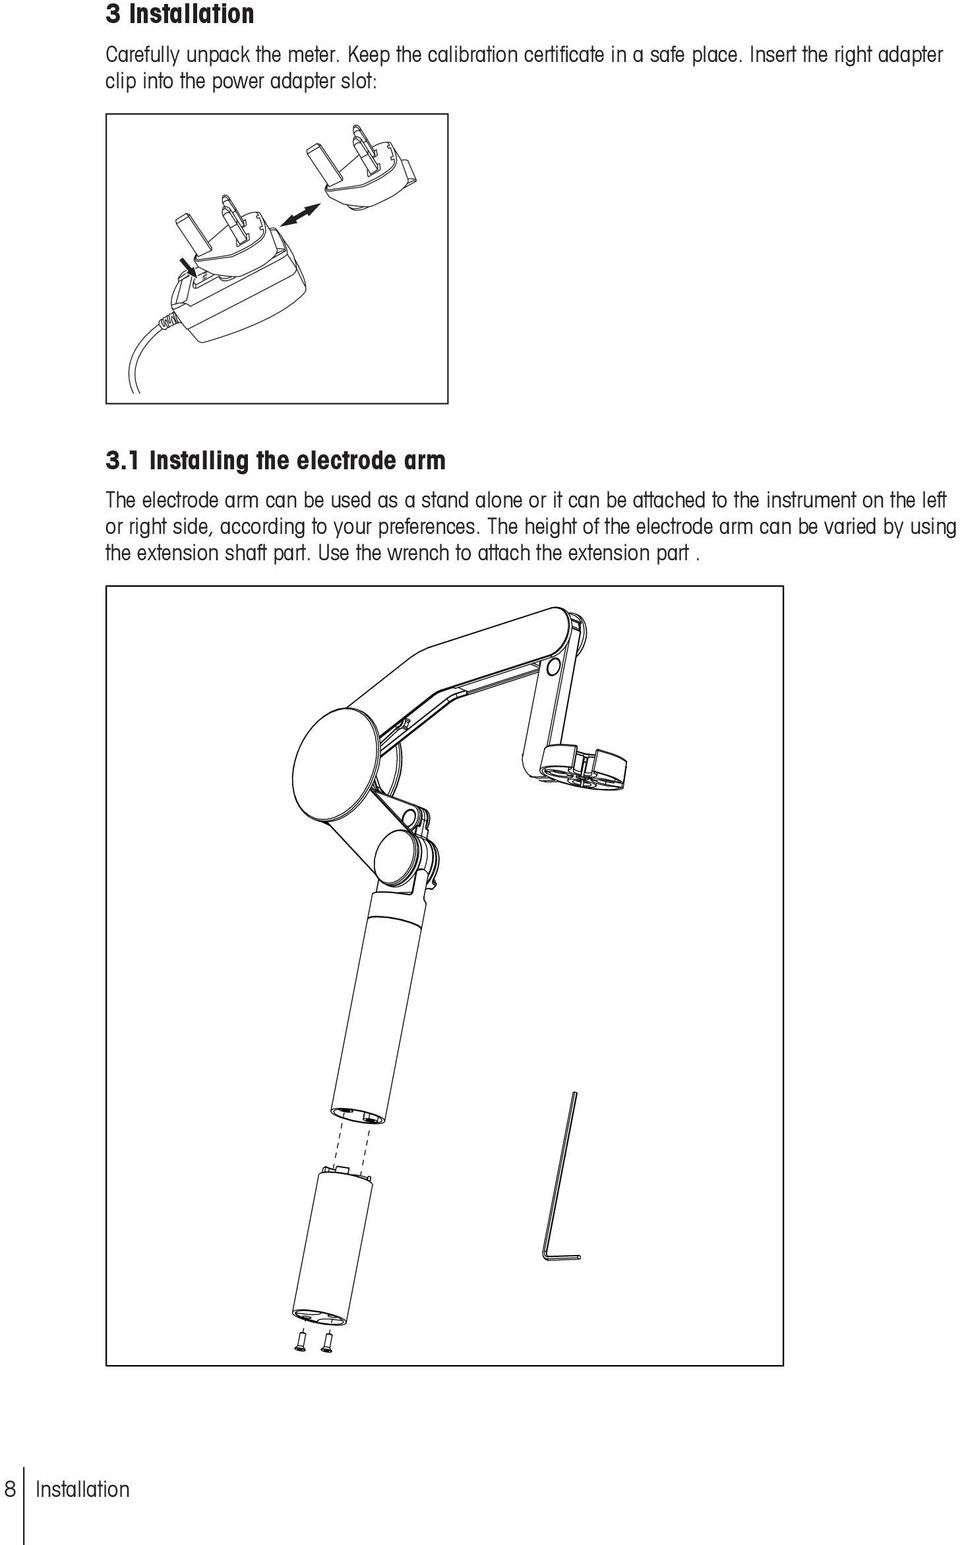 1 Installing the electrode arm The electrode arm can be used as a stand alone or it can be attached to the instrument